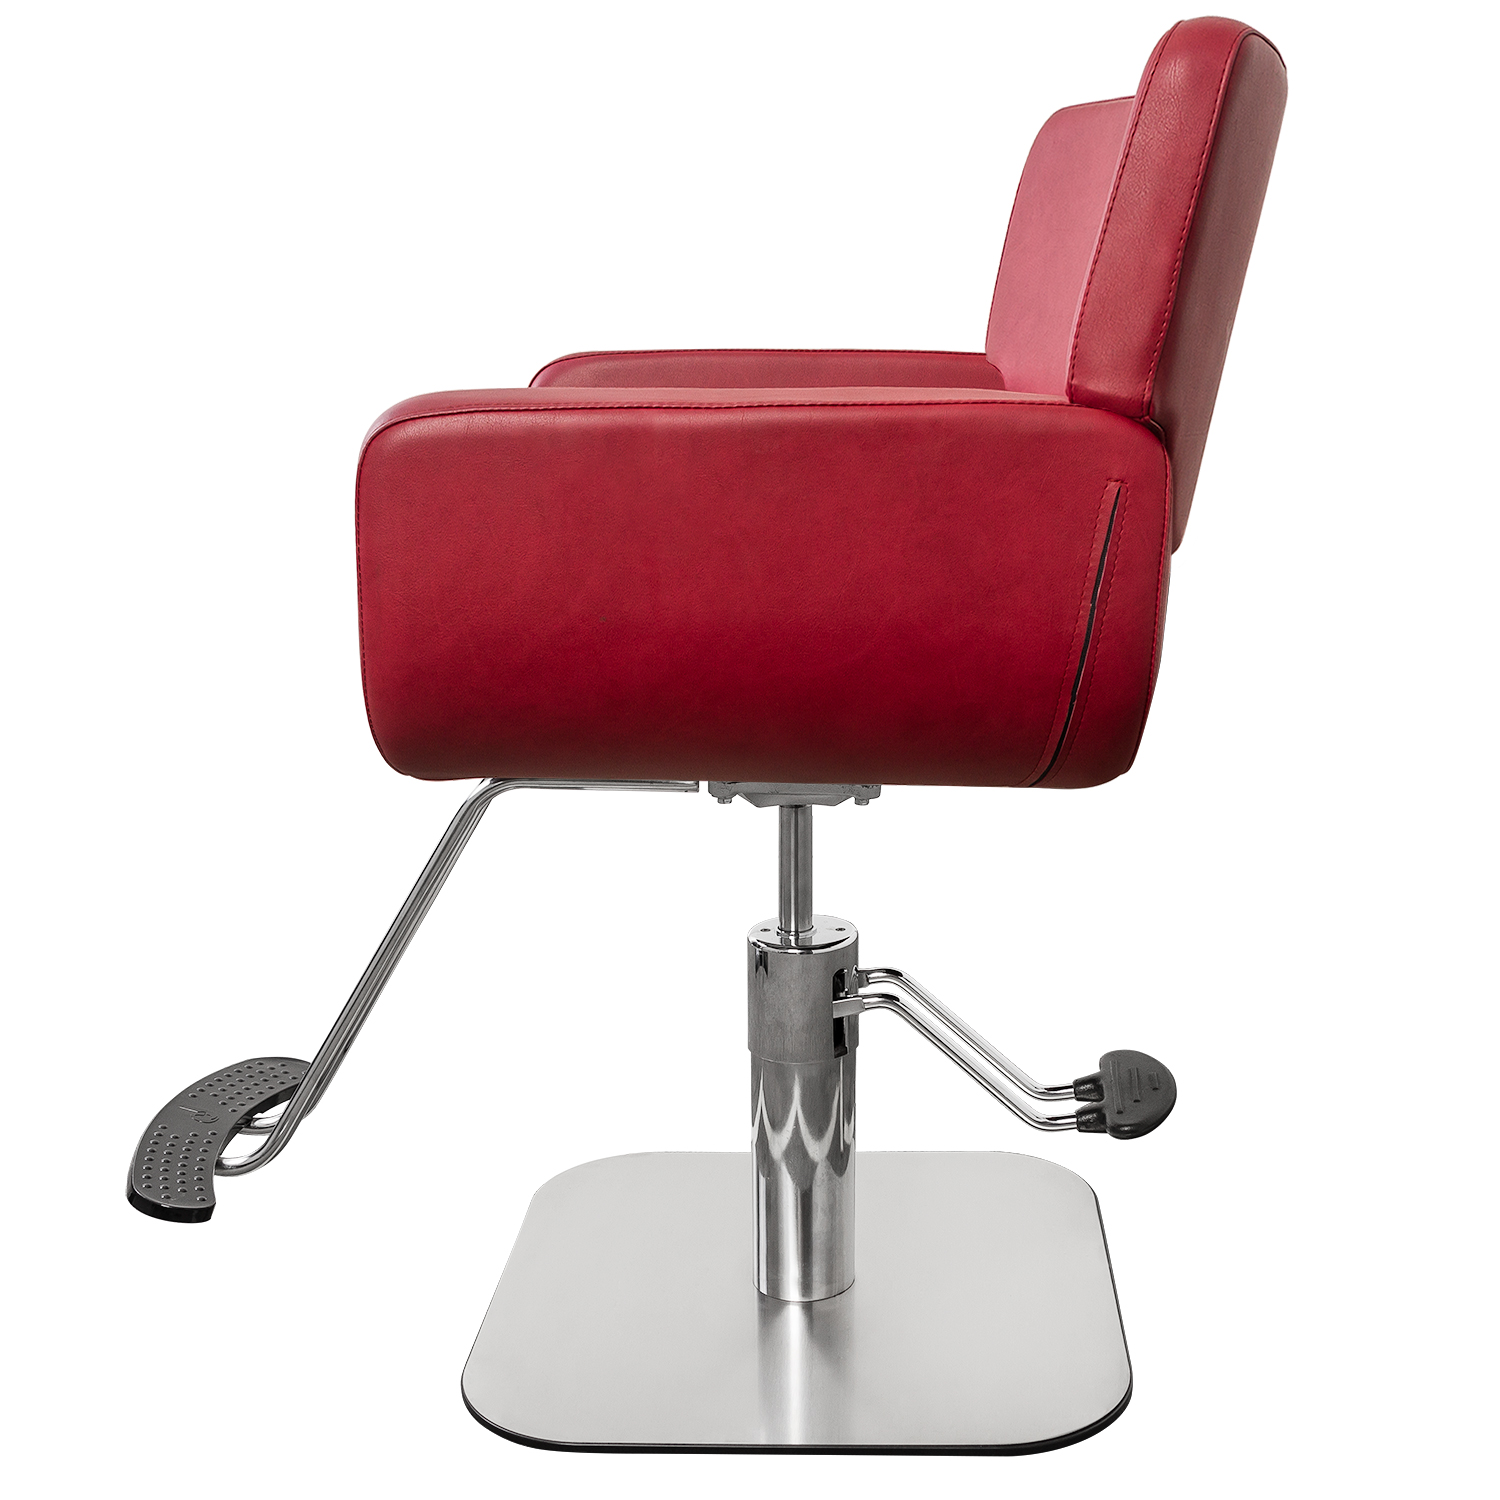 Quadro Hair Salon Chair by Salon Ambience alternative product image 17